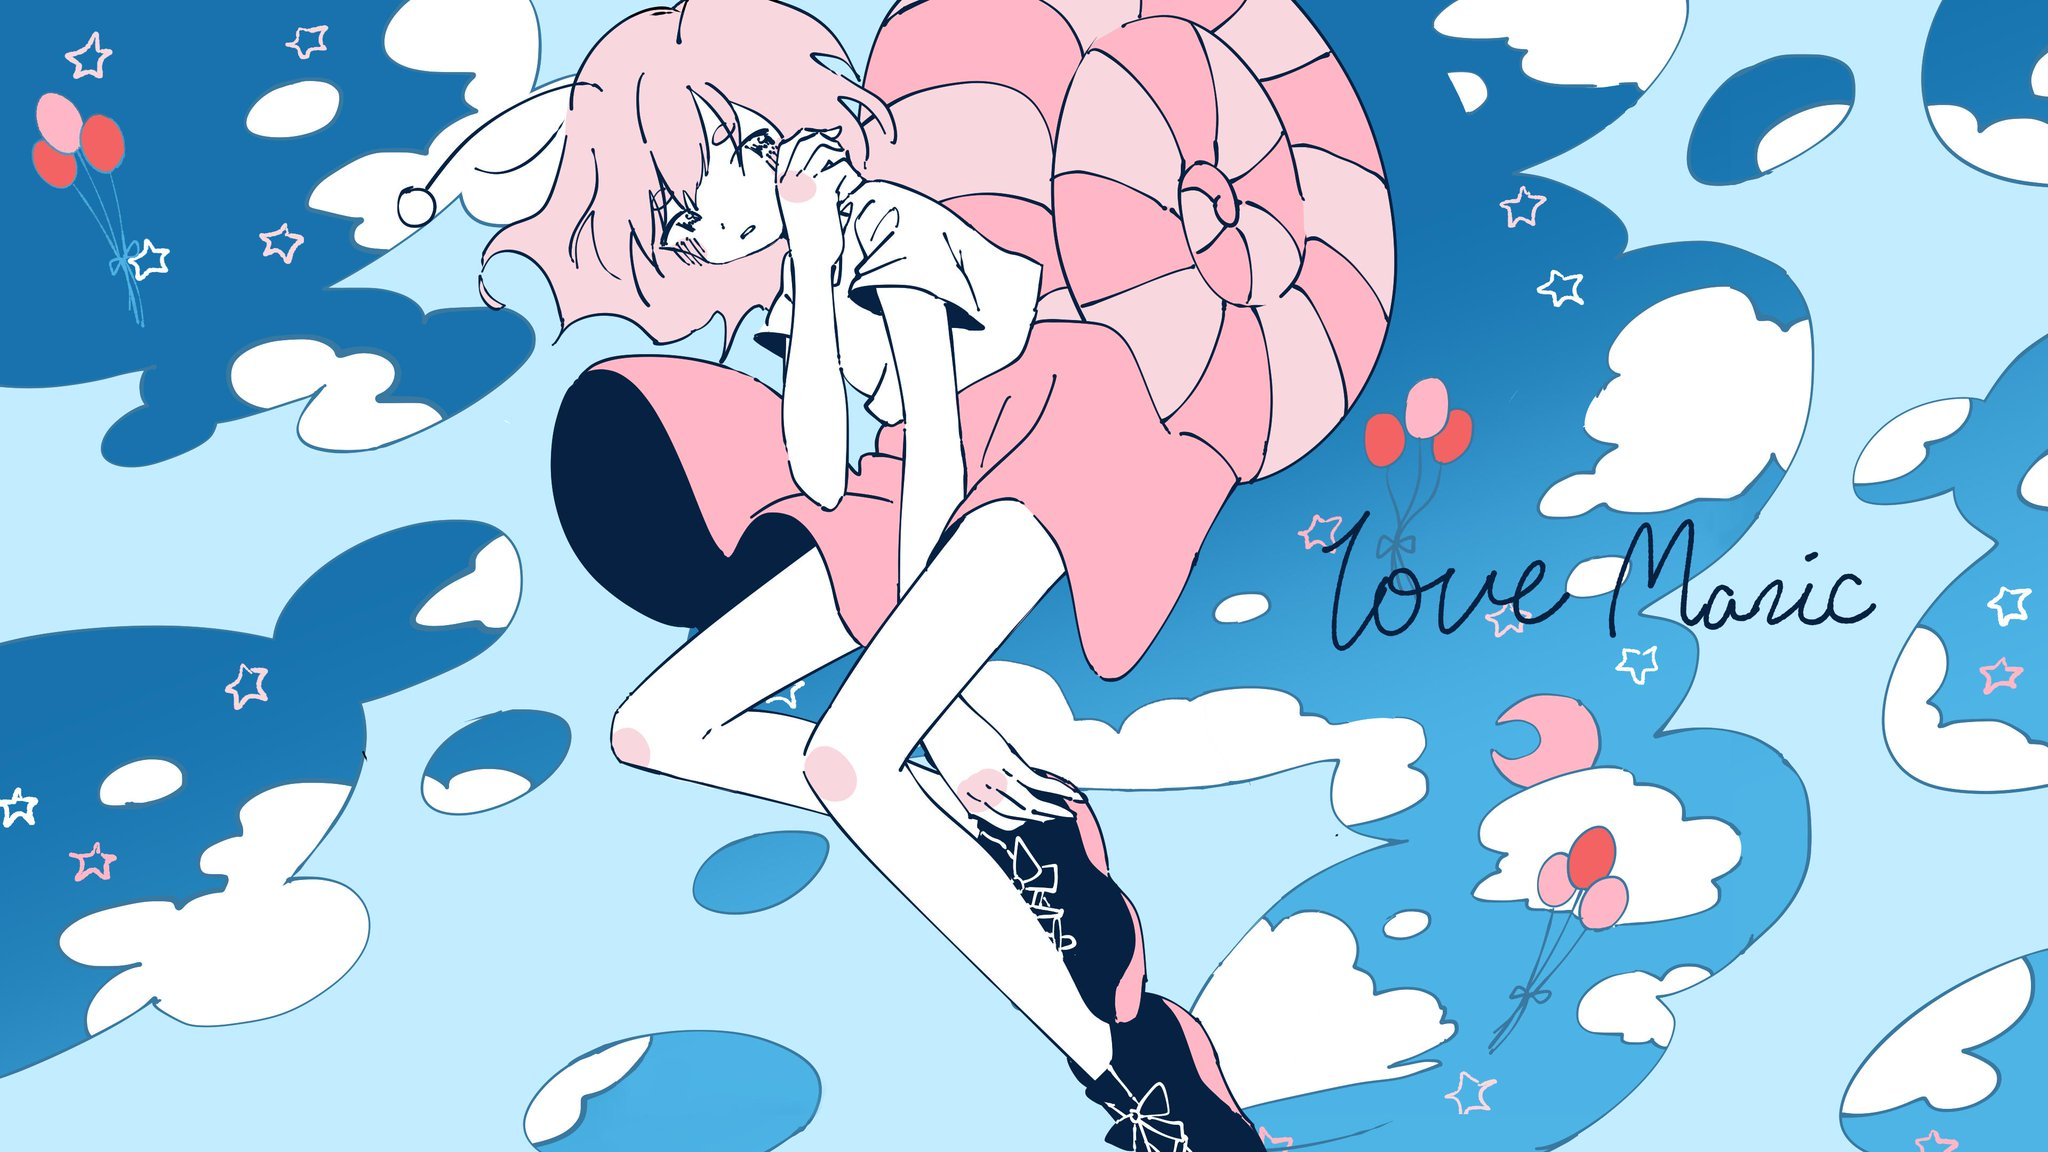 Snail S House S Latest Ep Love Magic Is An Electric Acoustic